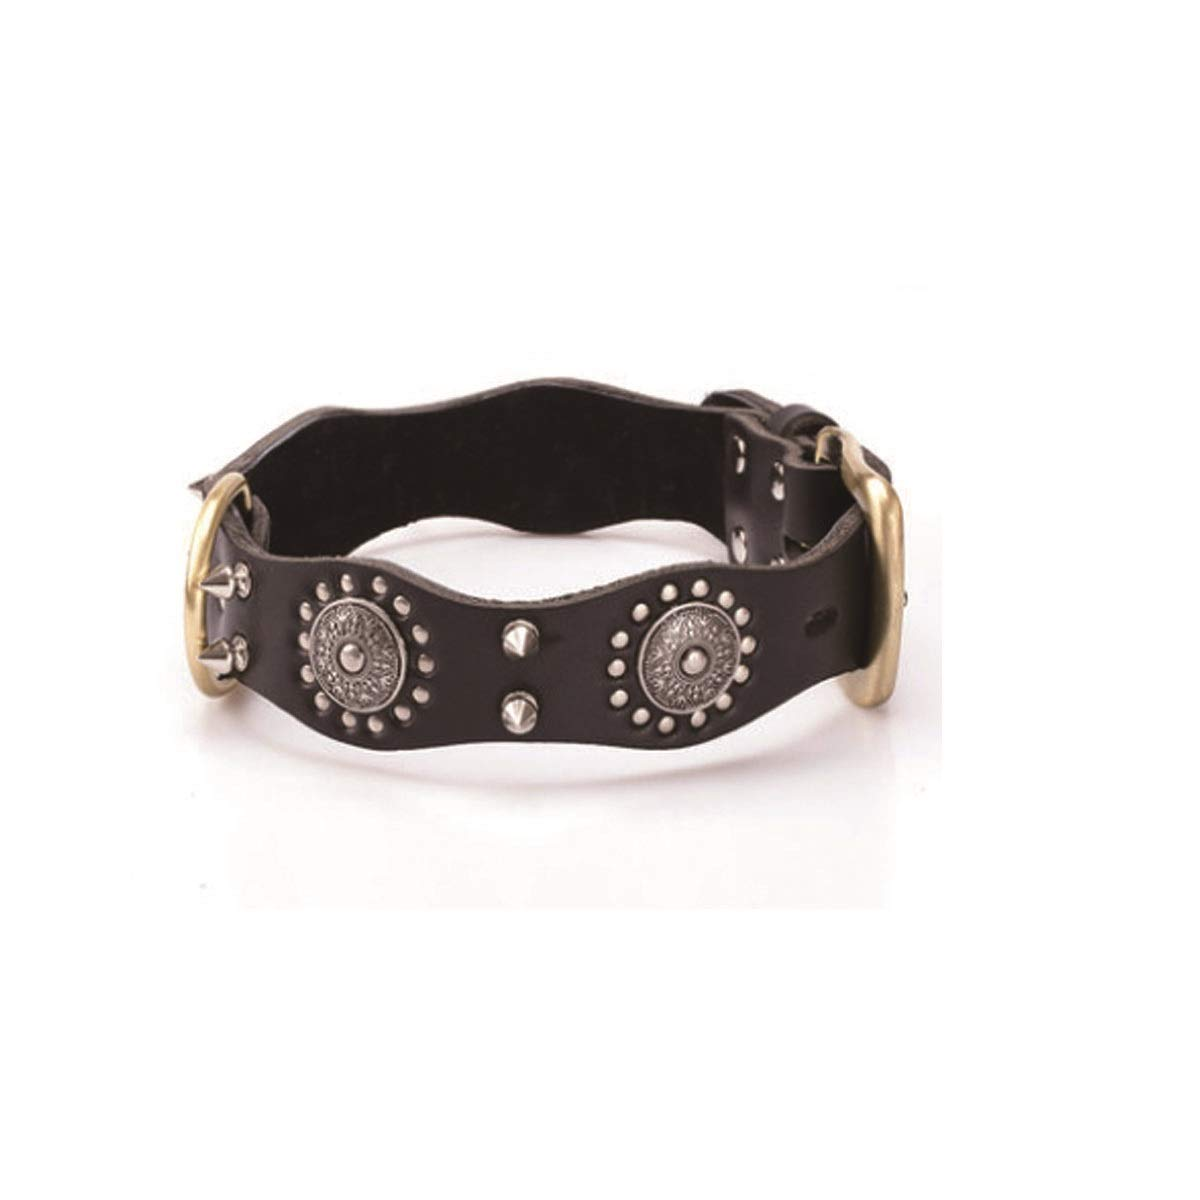 Black XL Black XL Tongboshi Leather Rivet Dog Collar, Large Dog Anti-bite Nail Dog Collar, Dog Collar, Dark Brown, Black The Collar is Beautiful in Design and Unique in co (color   Black, Size   XL)